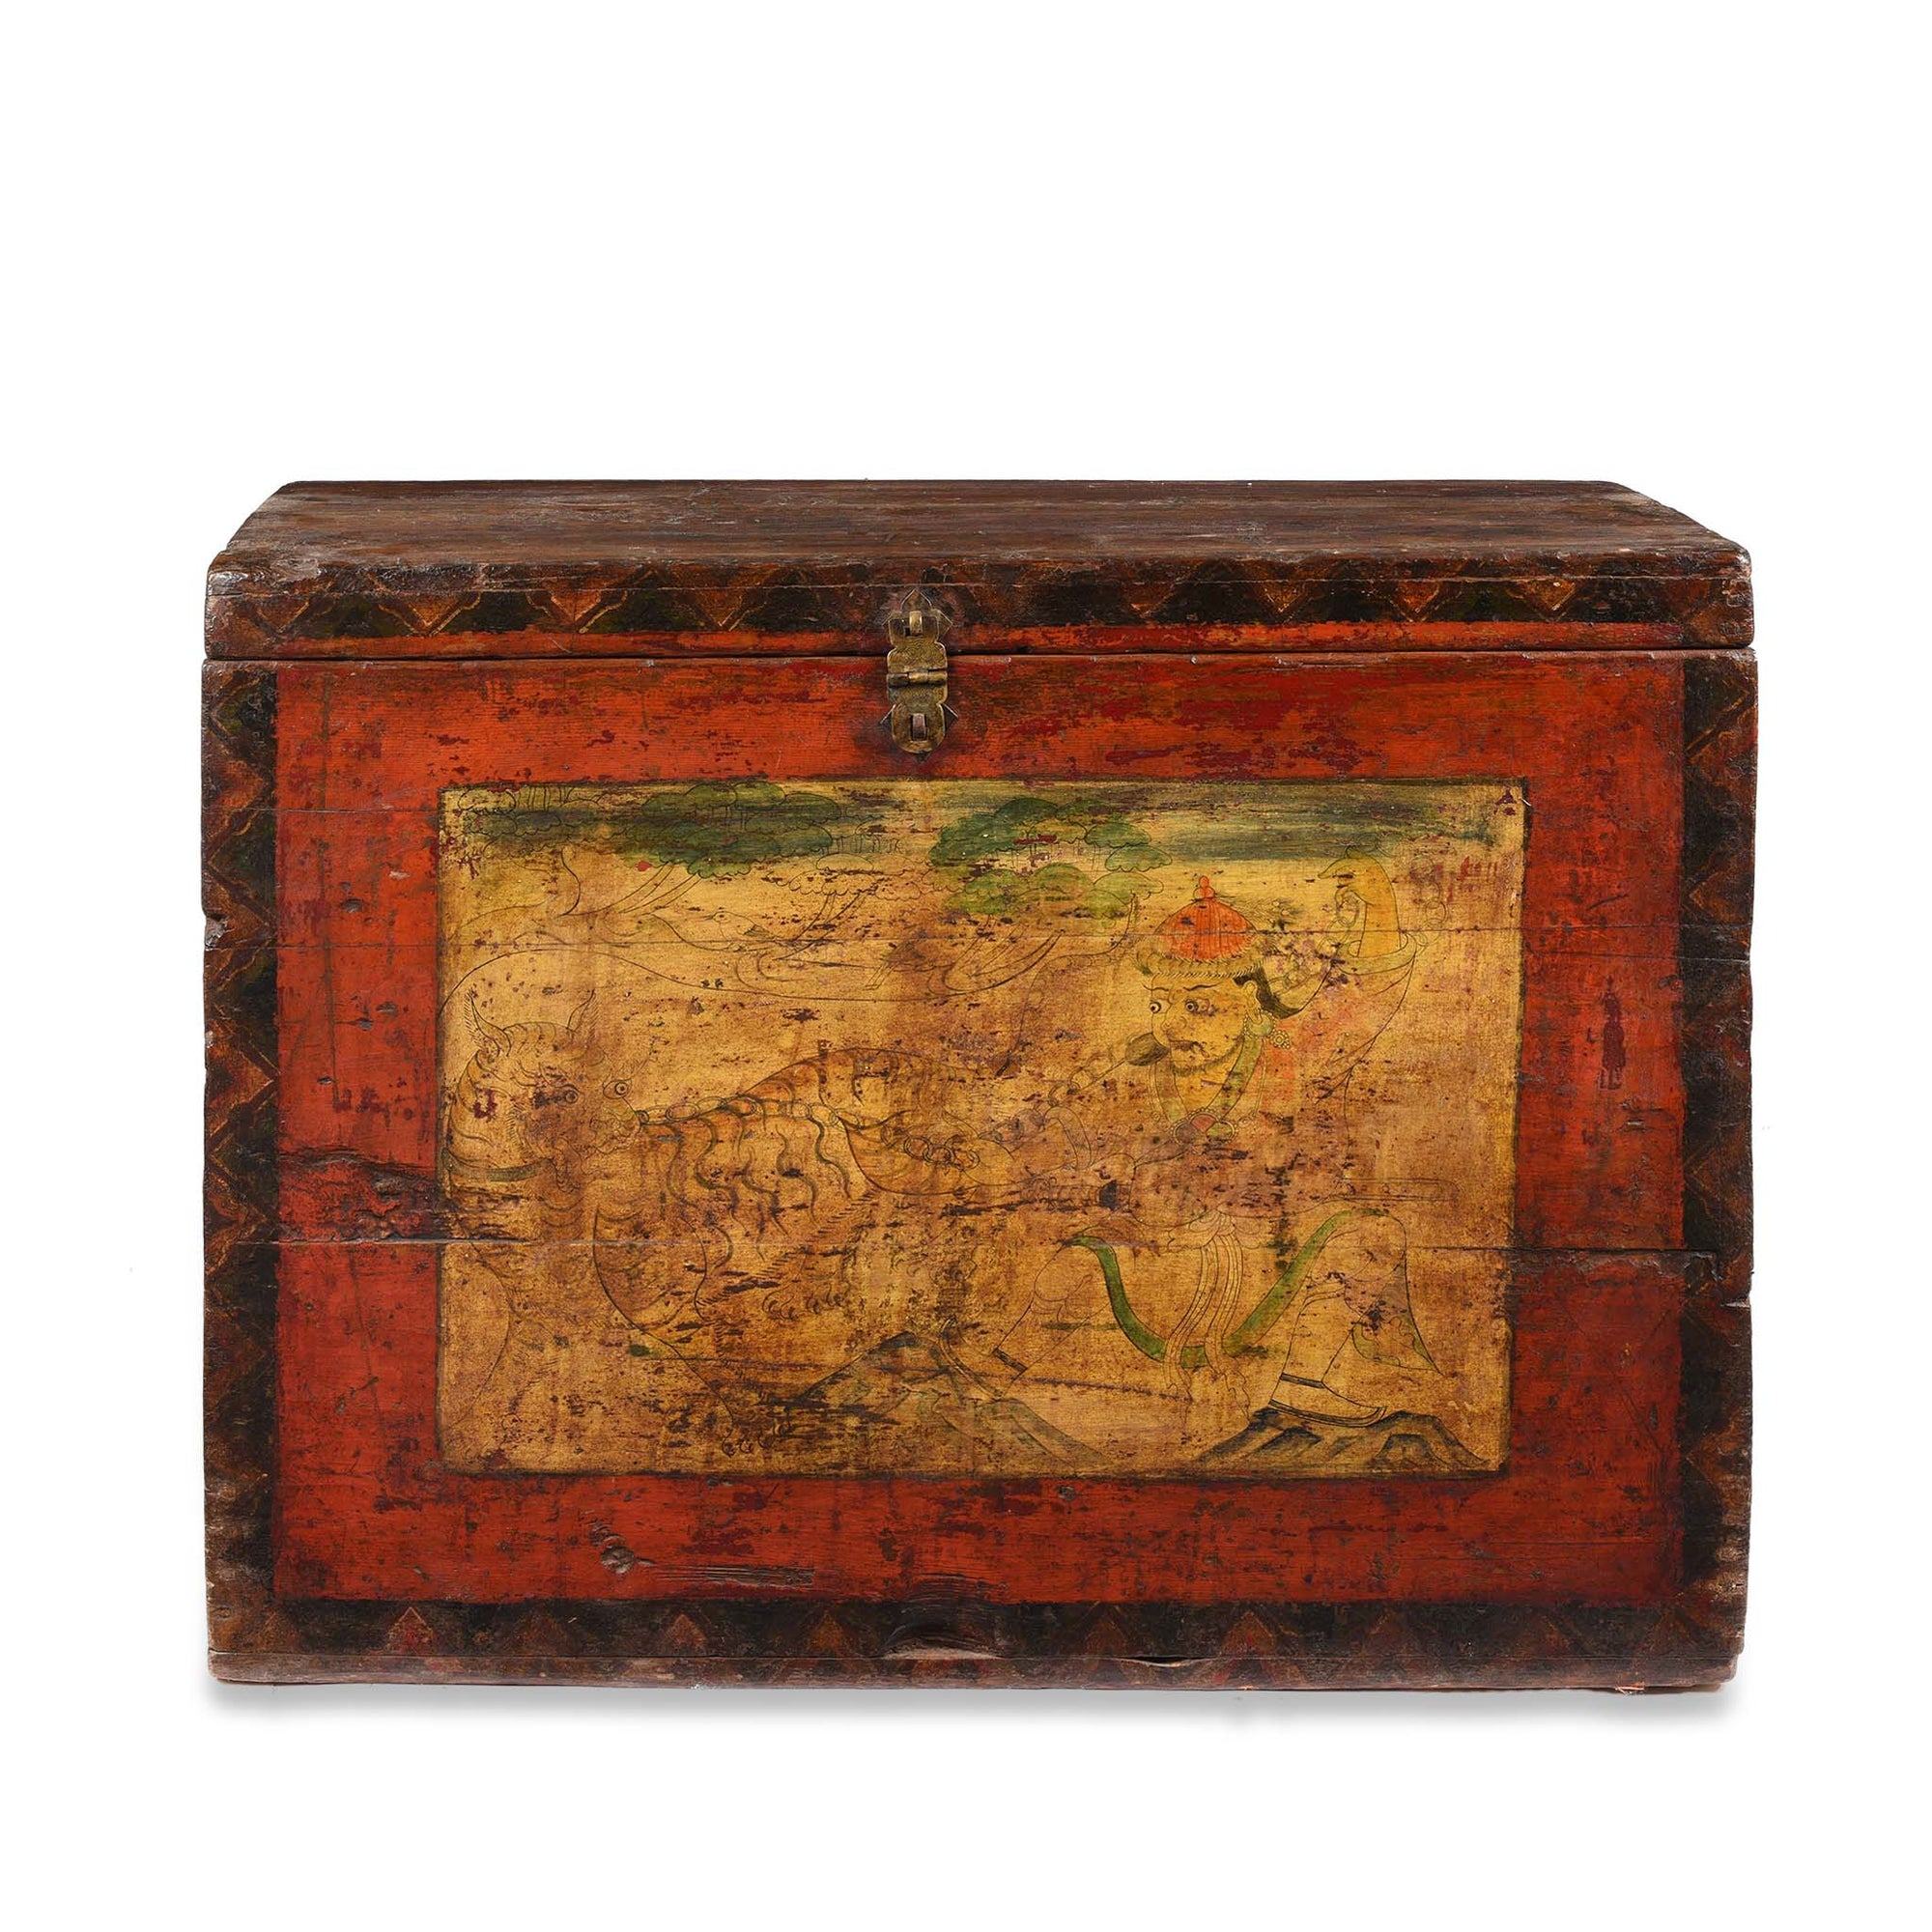 Painted Chest from Tibet - 18thC - 103 x 33 x 73 (wxdxh cms) - C1069